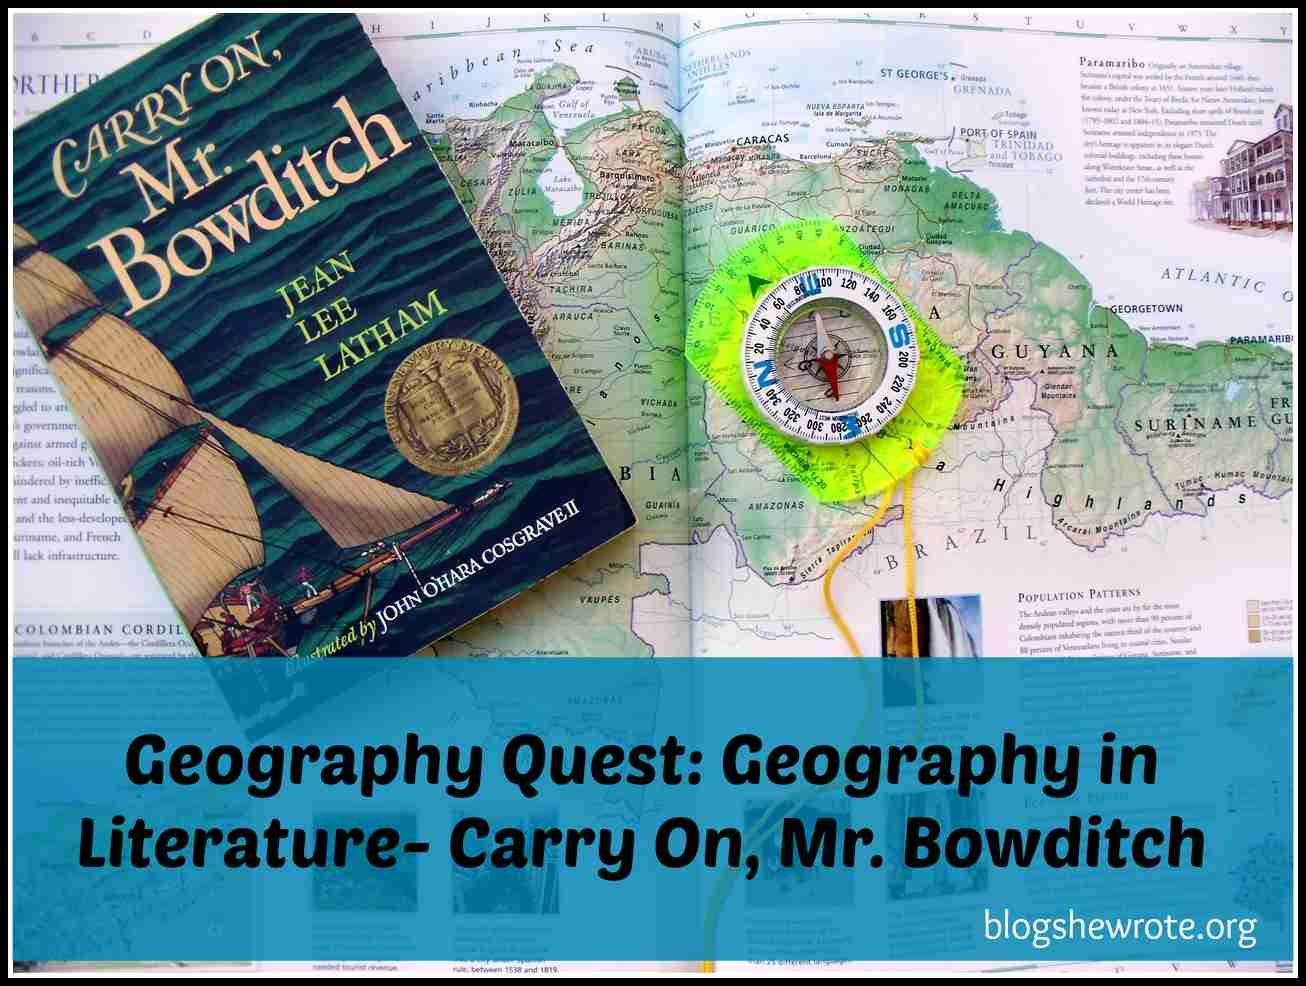 Blog, She Wrote: Geography Quest- Geography in Literature: Carry On, Mr. Bowditch